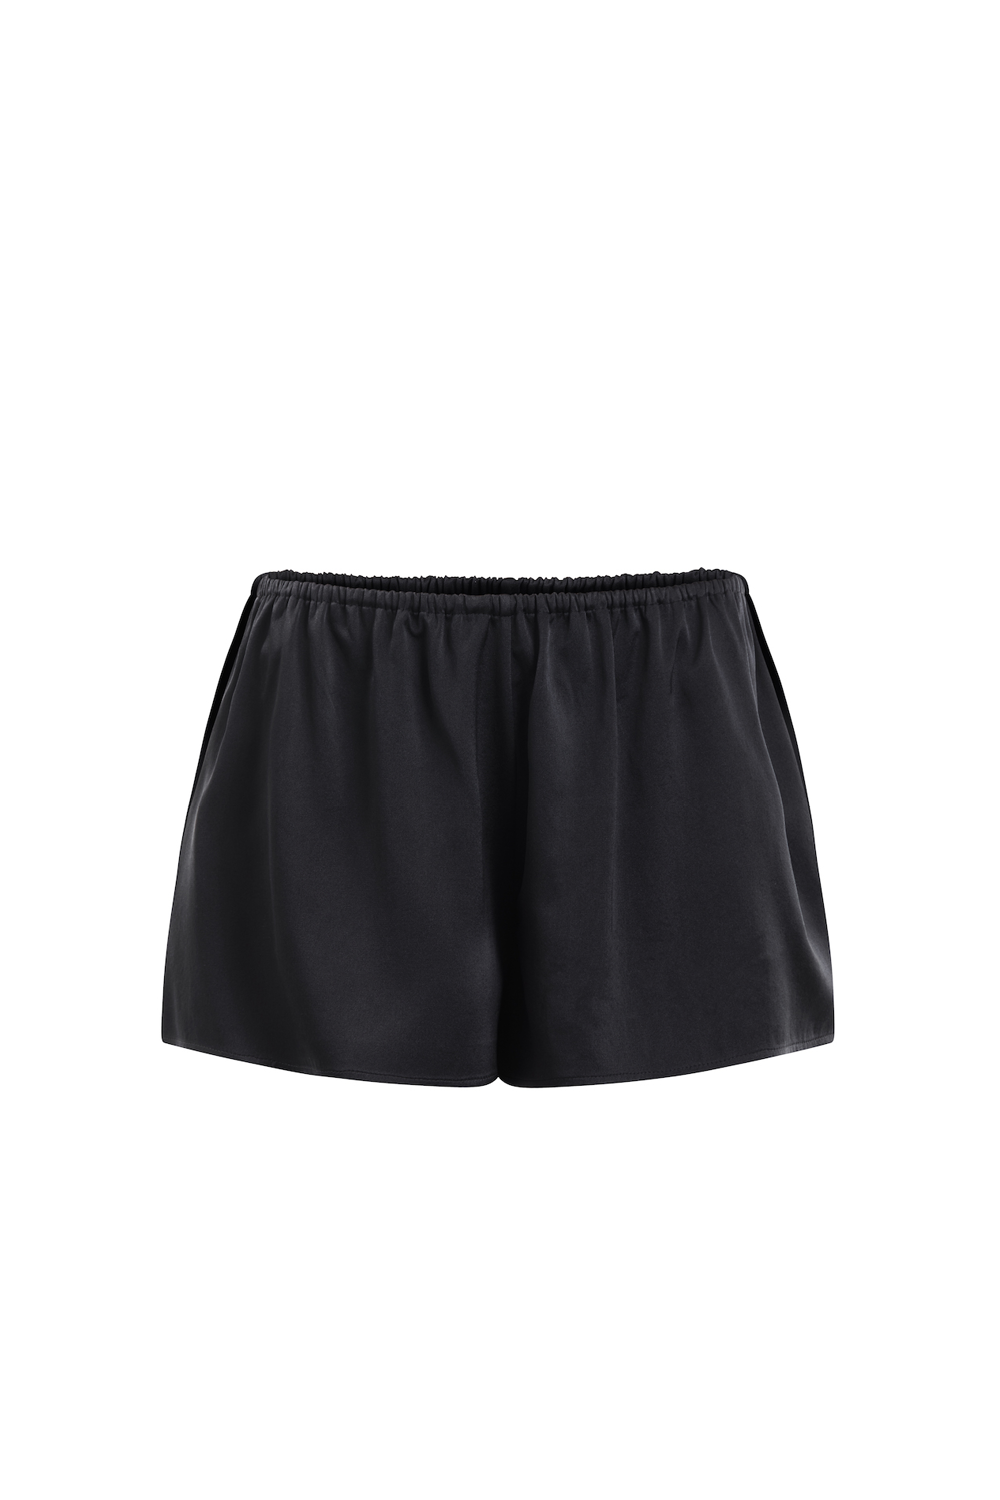 White Lotus organic peace silk shorts black